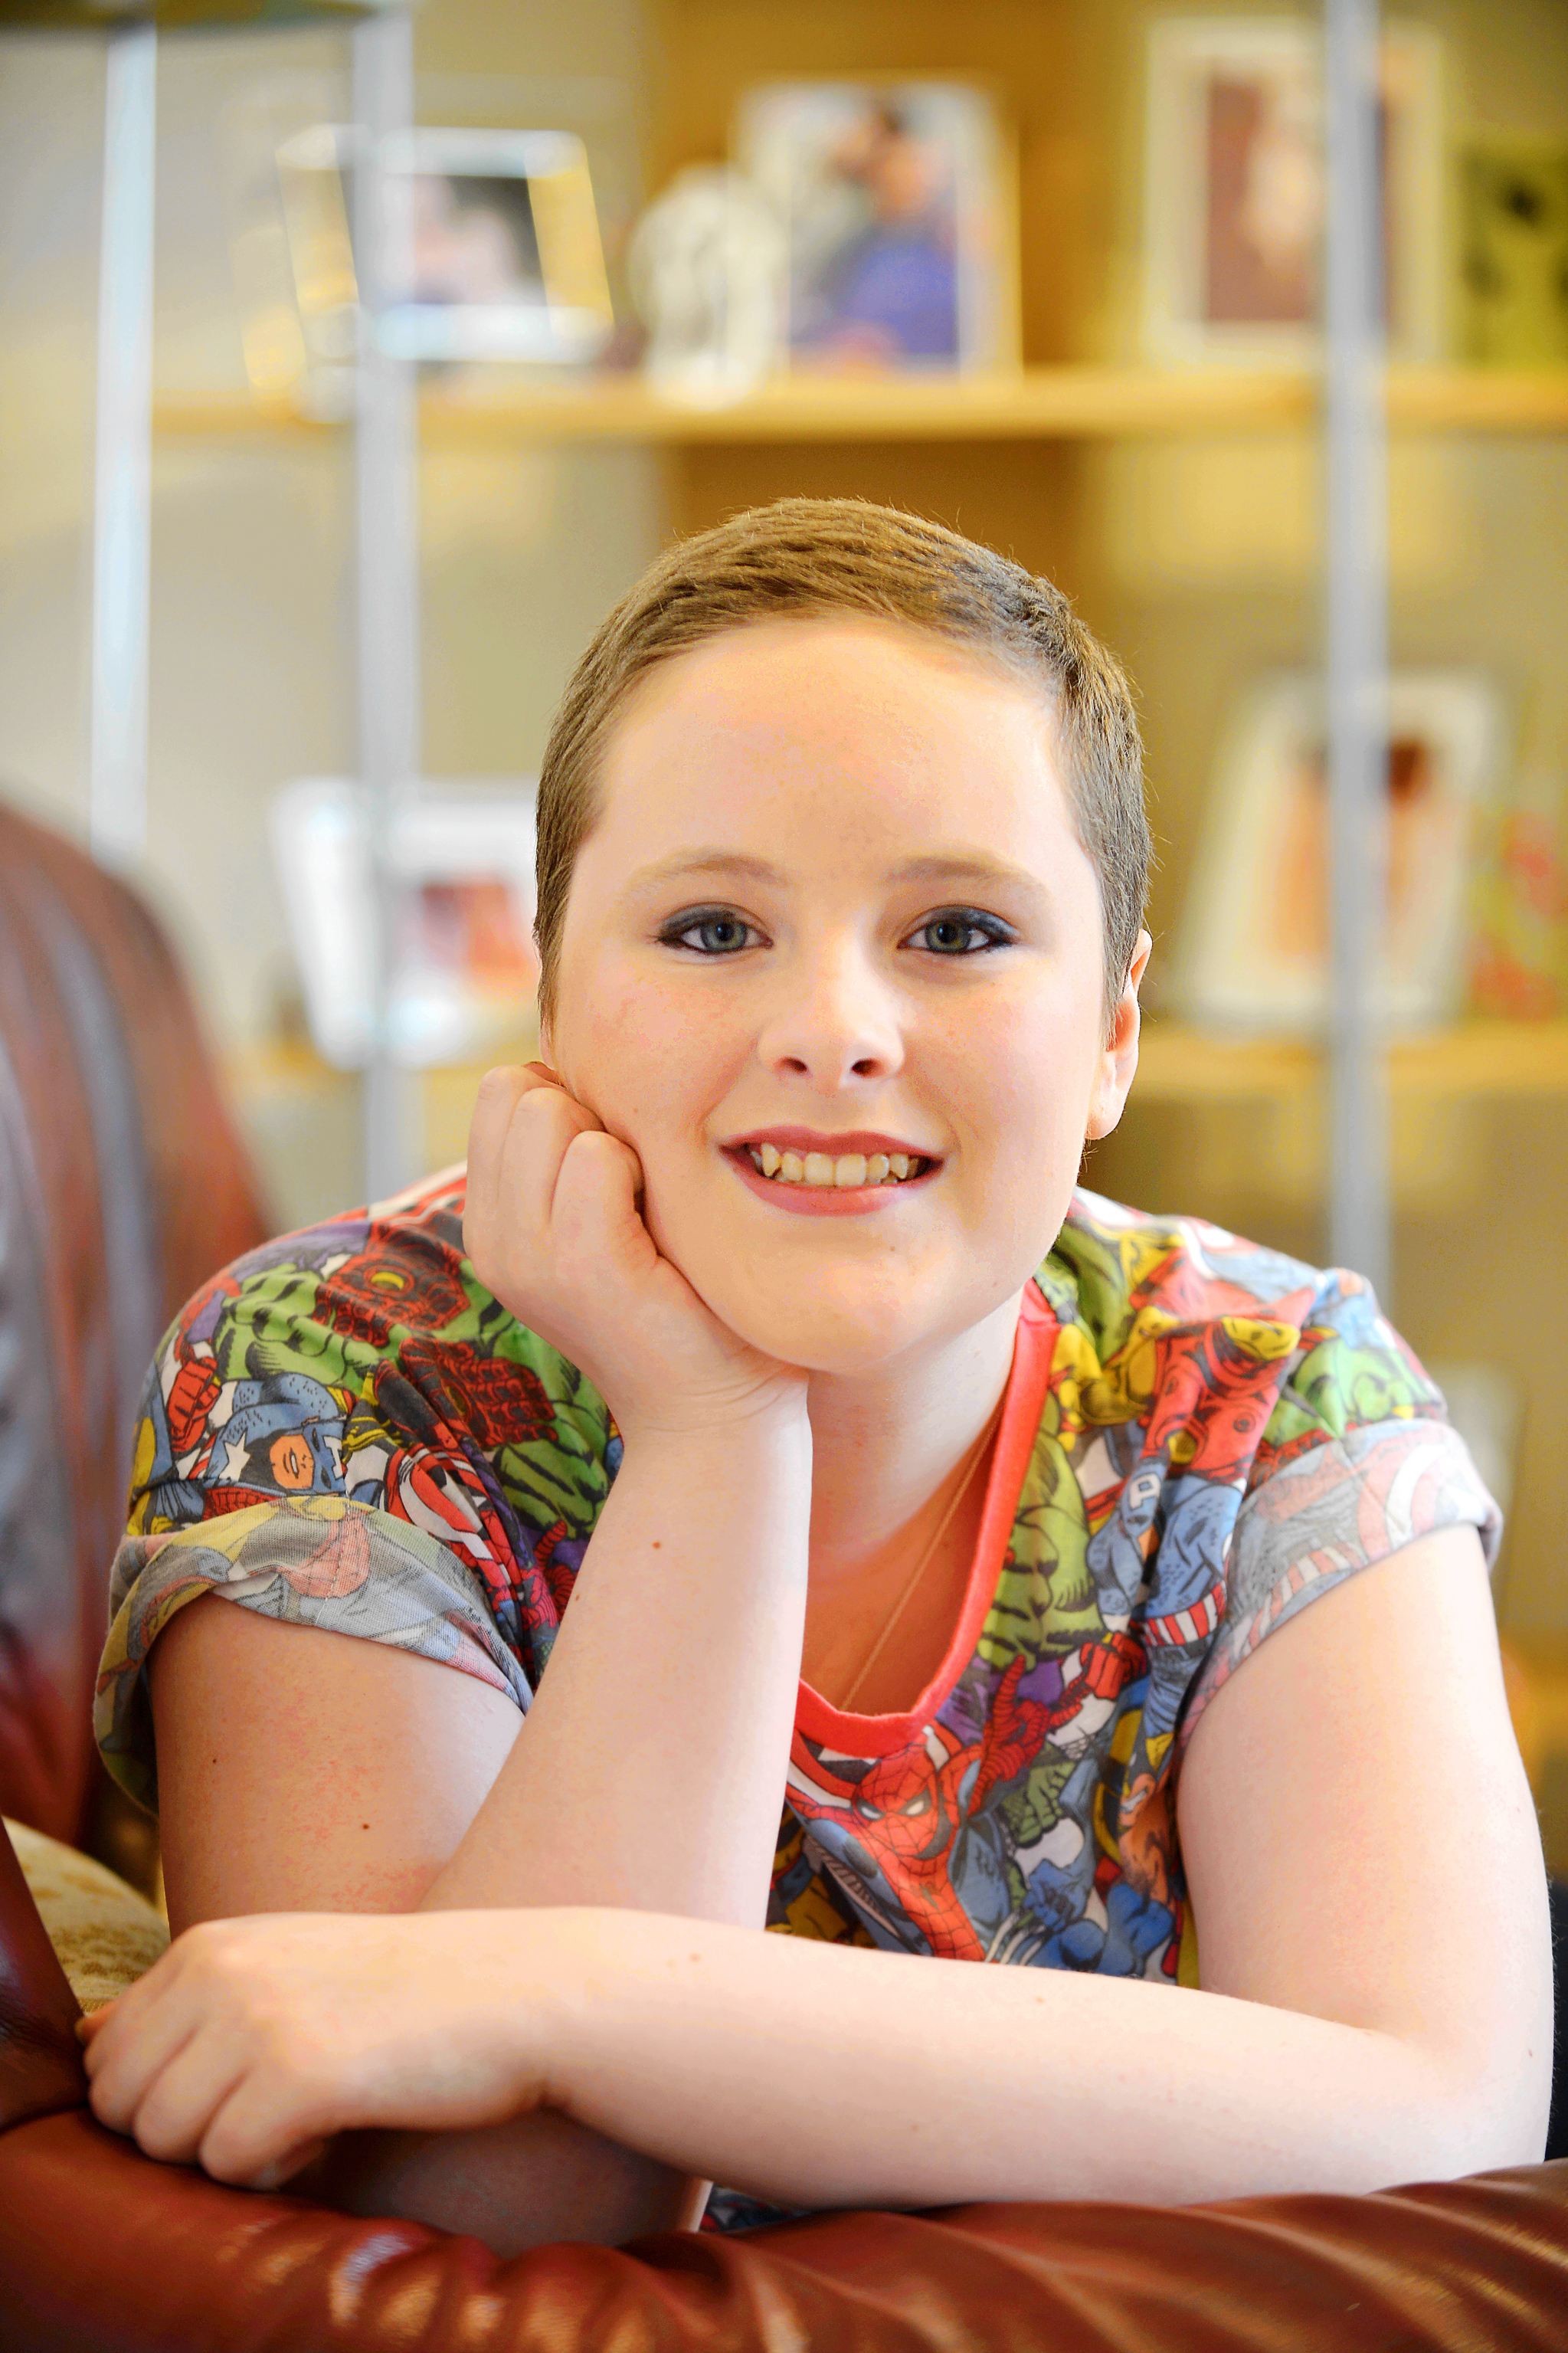 DELIGHT: Sarah Bullock, 14, wants to thank two charities